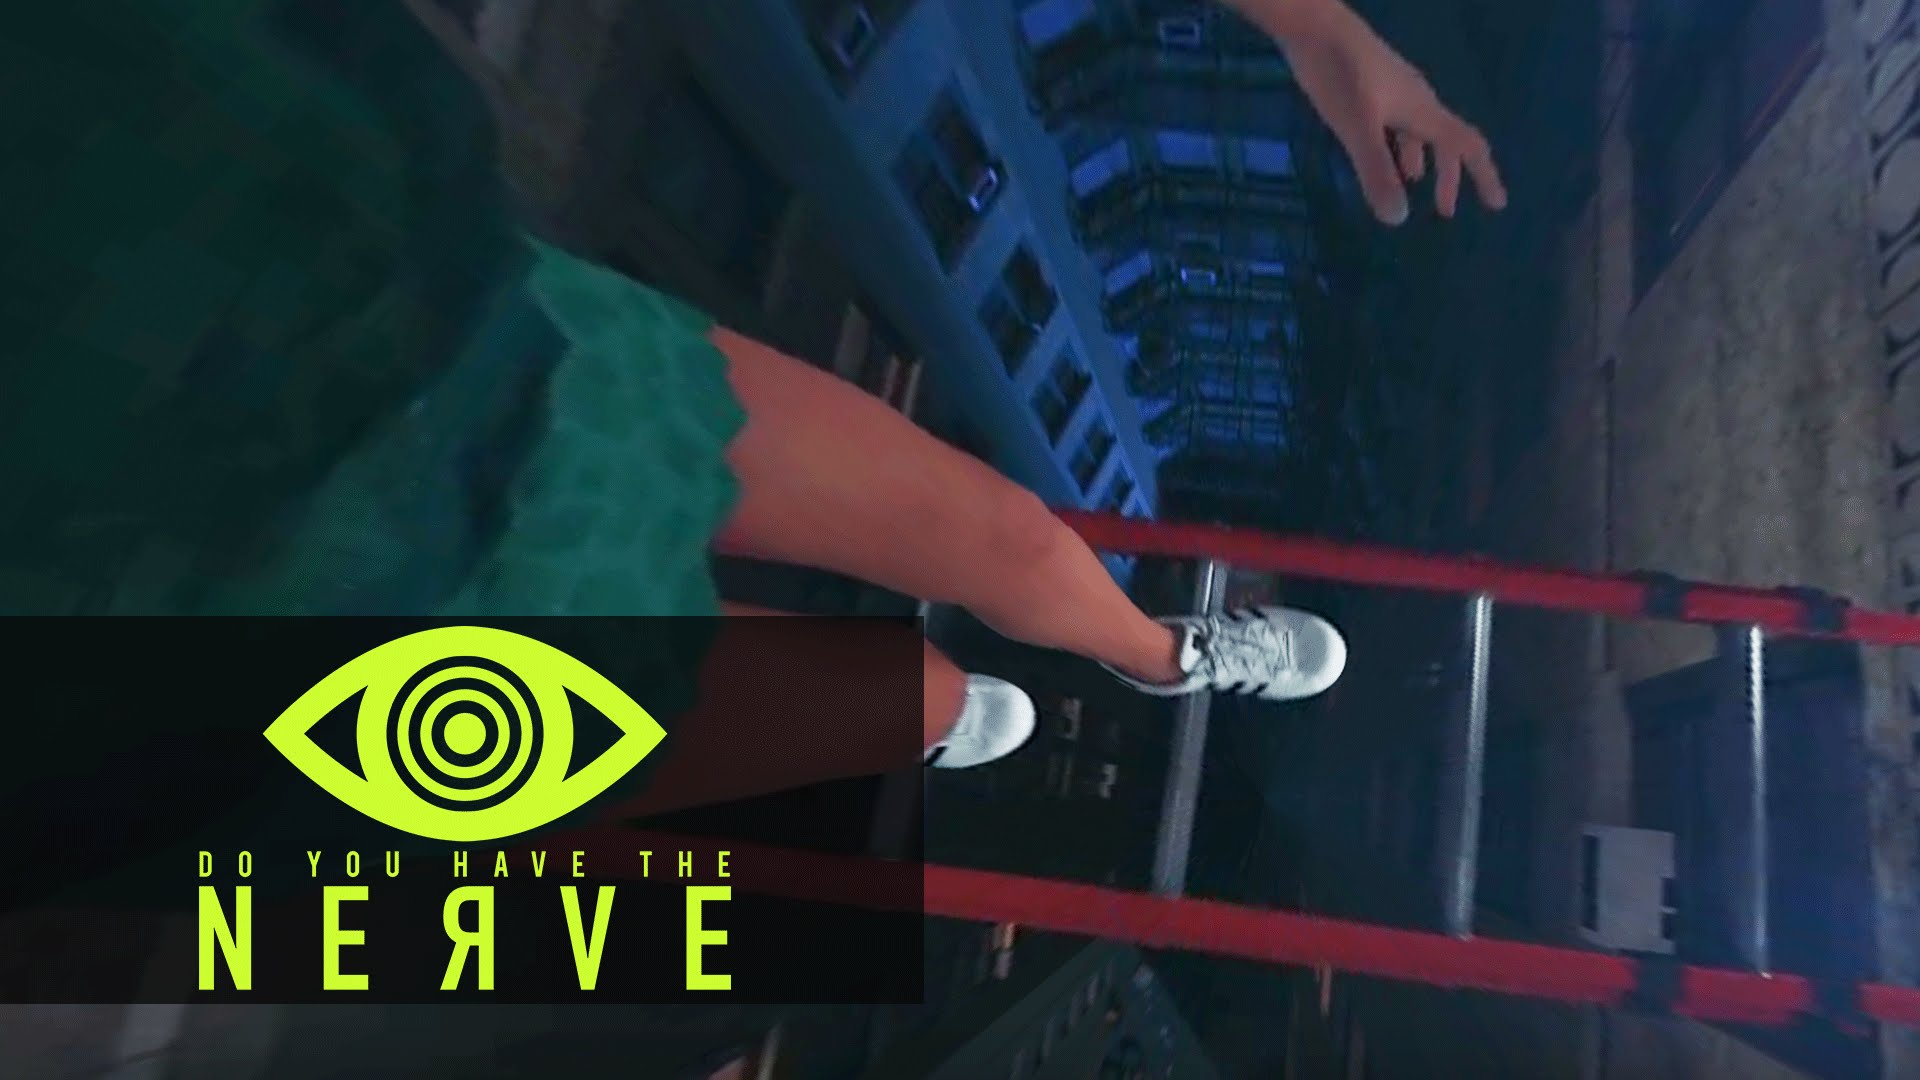 Nerve (2016) 360 Video – VR Dare: Climb Across The Ladder (Vee)